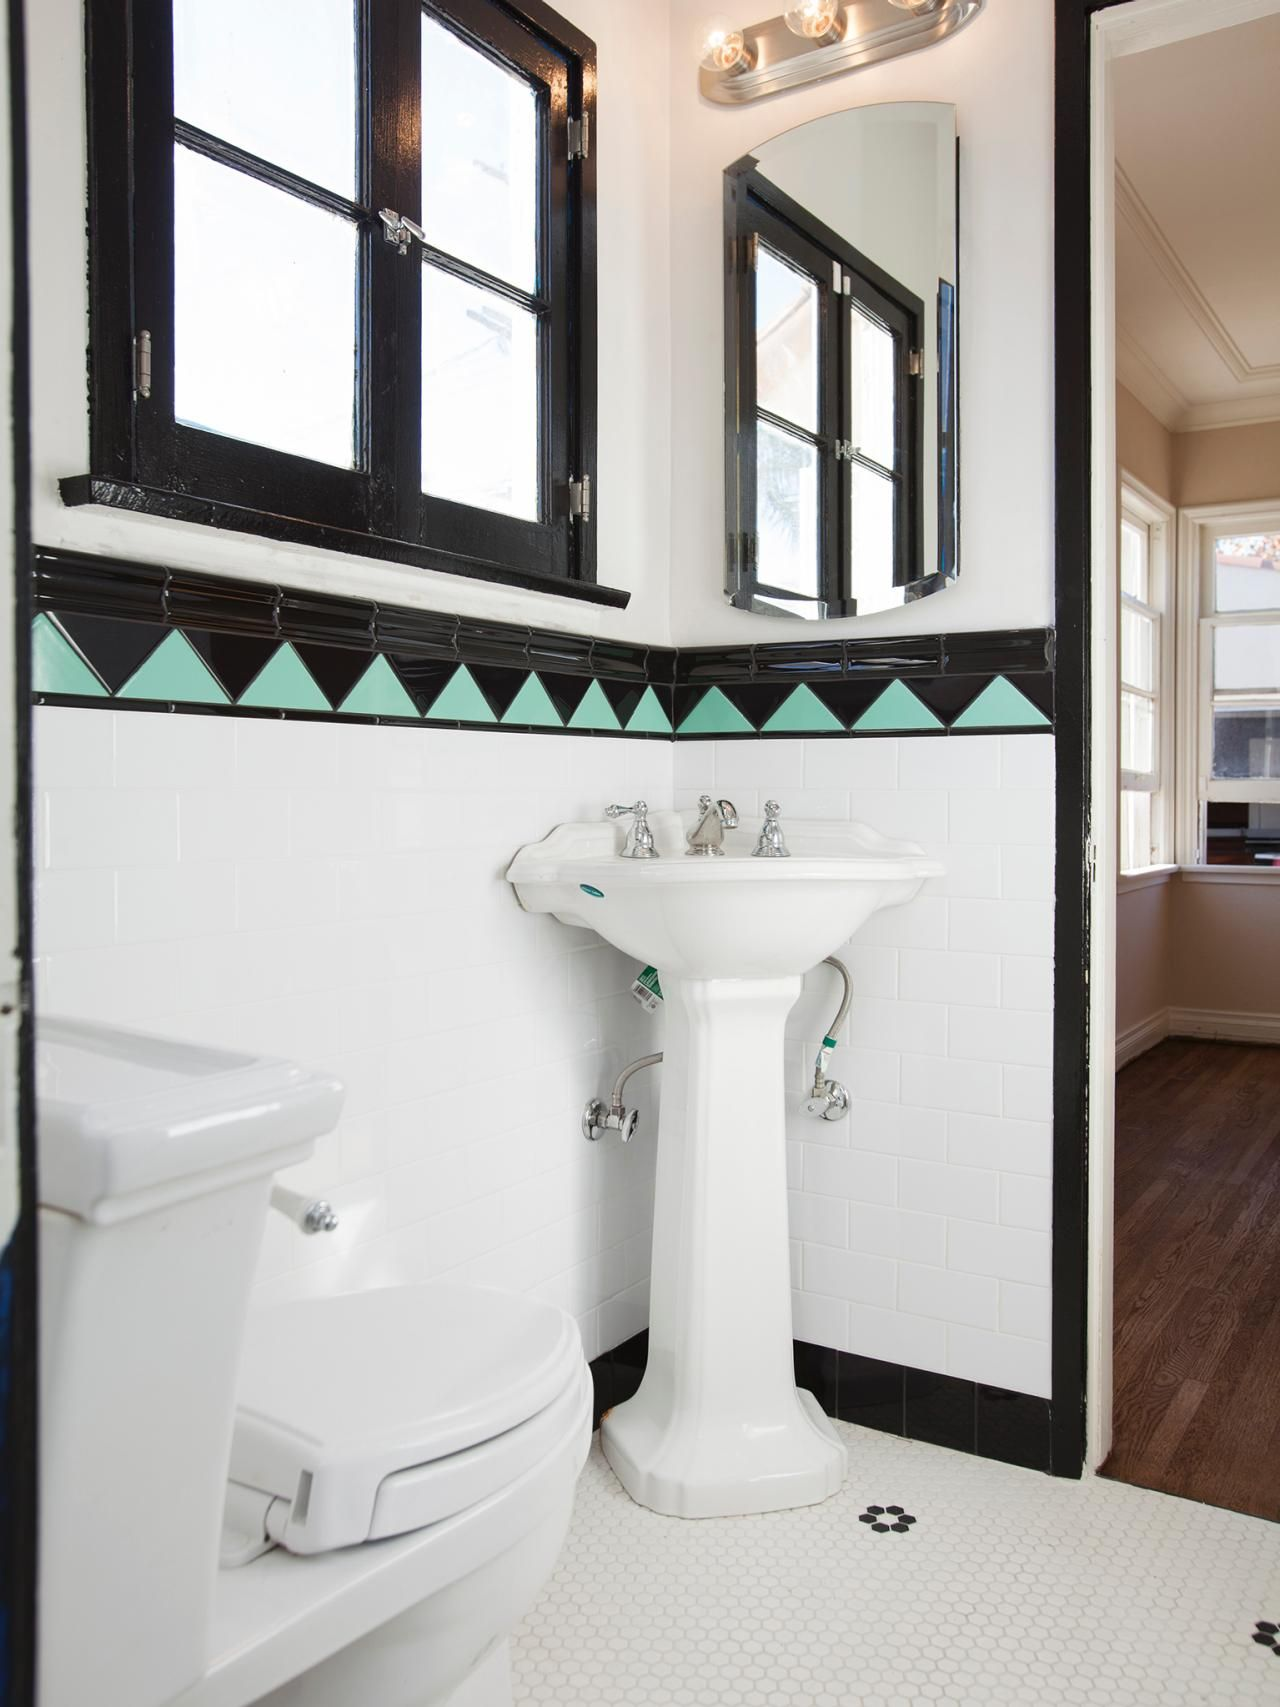 Wall art decor bathroom - 25 Amazing Room Makeovers From Hgtv S House Hunters Renovation Art Deco Bathroombathroom